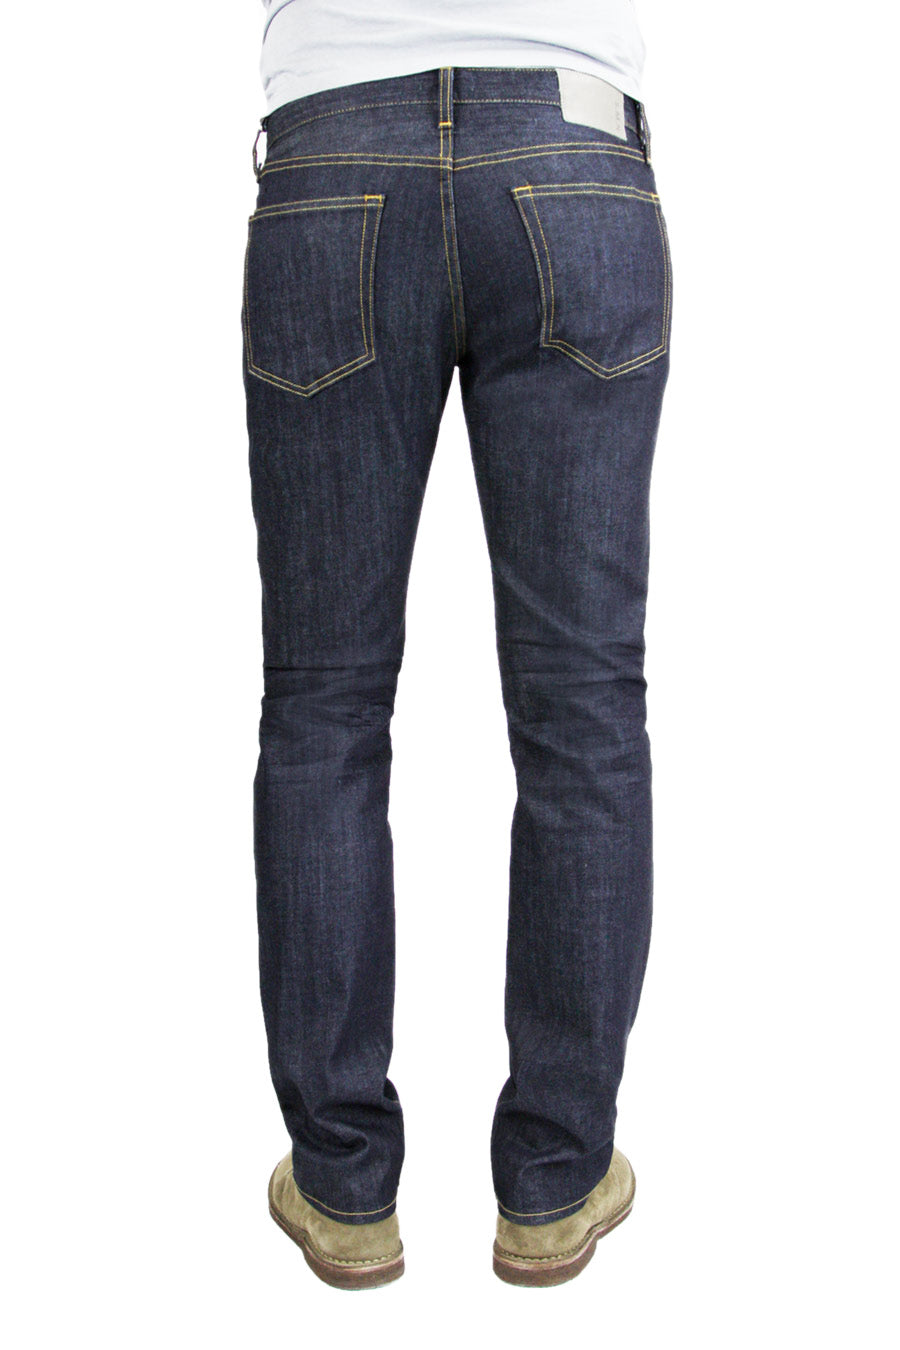 Back of S.M.N Studio's Bond in Bravo Men's Jeans. A slim straight raw denim washed jean made in a comfort stretch pure indigo dyed Japanese denim.